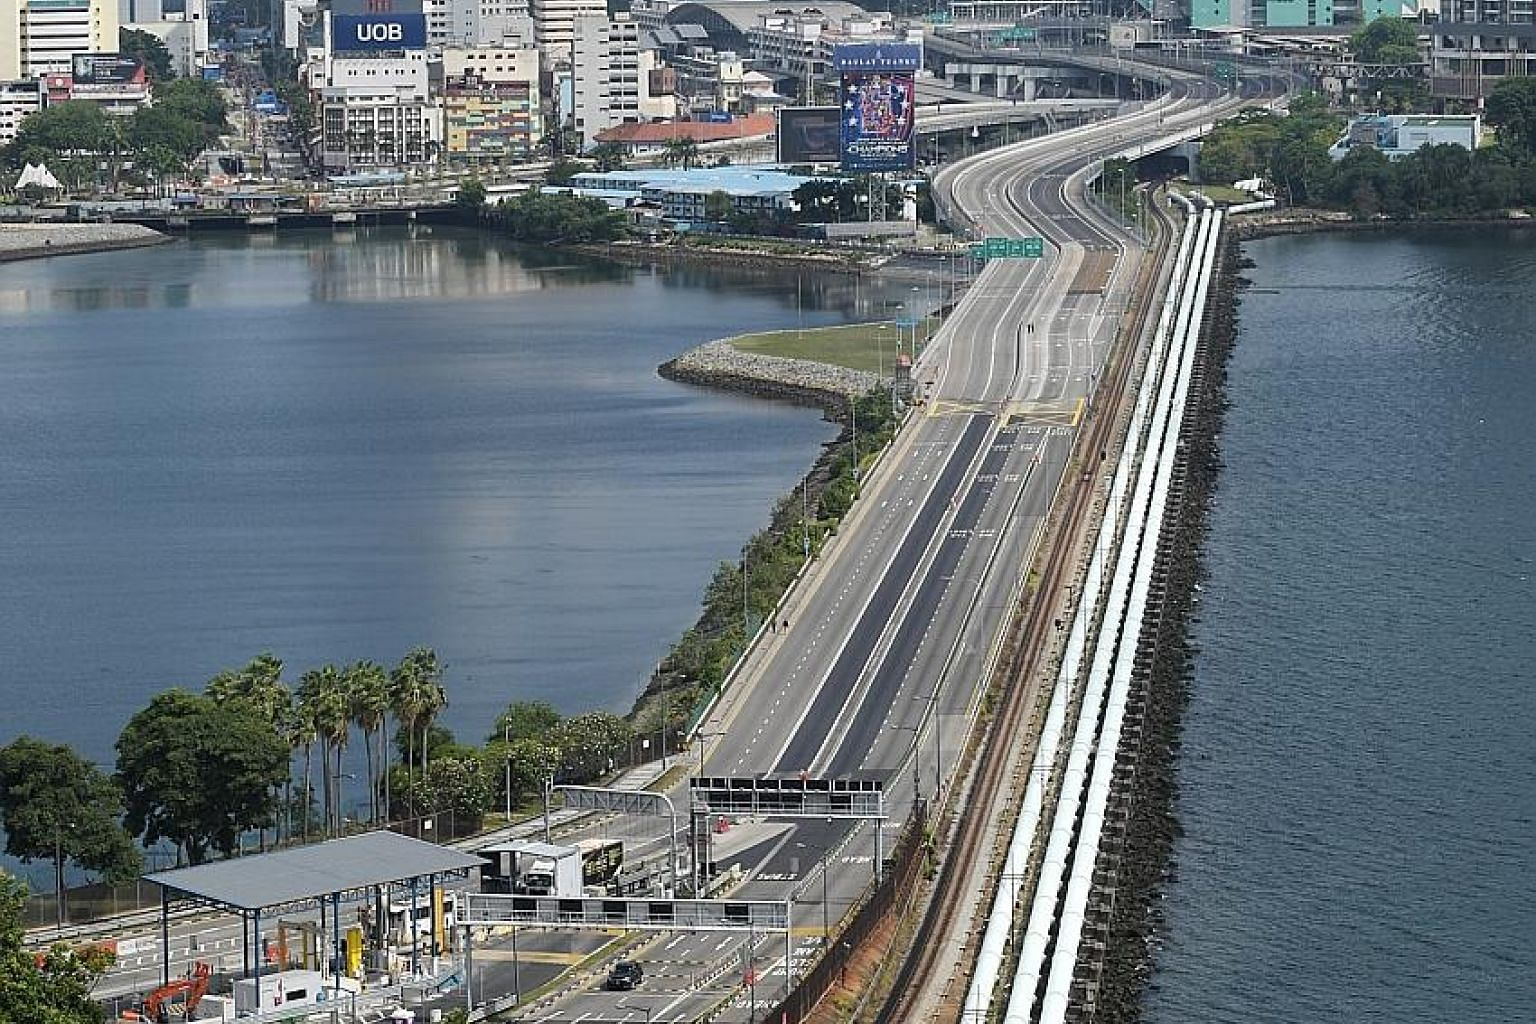 The Causeway between Johor and Singapore devoid of any vehicles at 10am yesterday, after Malaysia's movement control order took effect. However, movement of essential supplies across the border continued, with Trade and Industry Minister Chan Chun Si